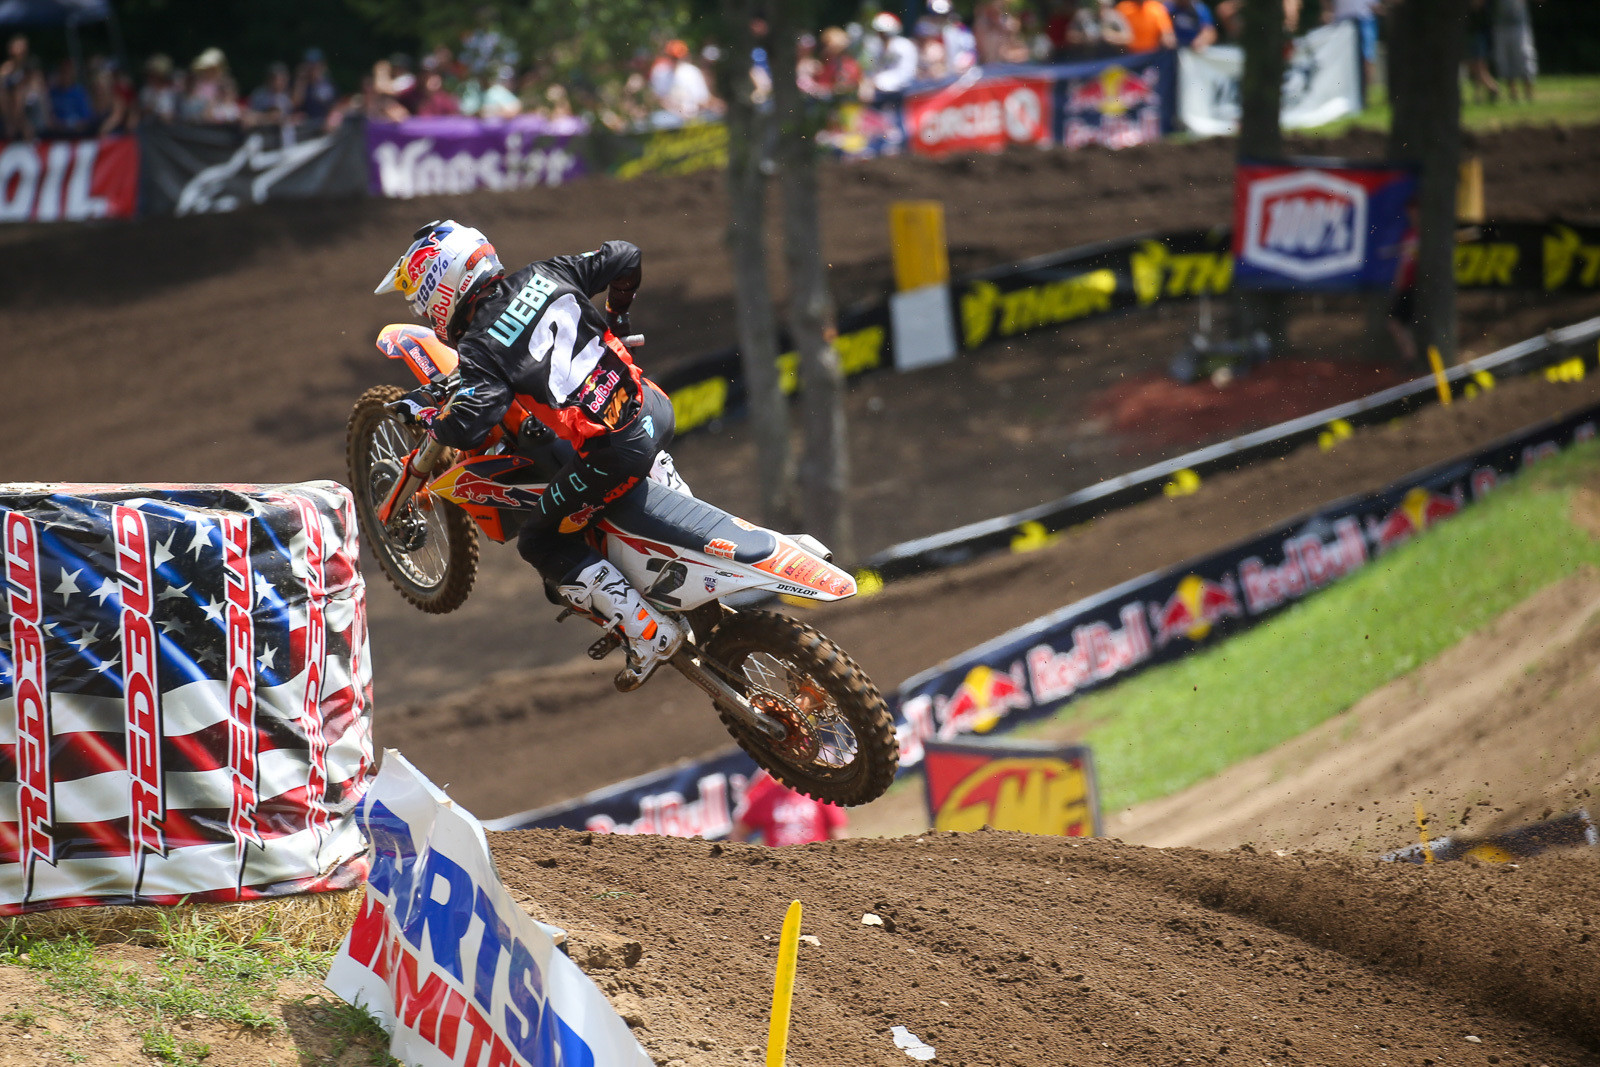 Cooper slipped to second early on, and eventually finished the moto in third spot. He was fifth in moto two, and fourth overall for the day.